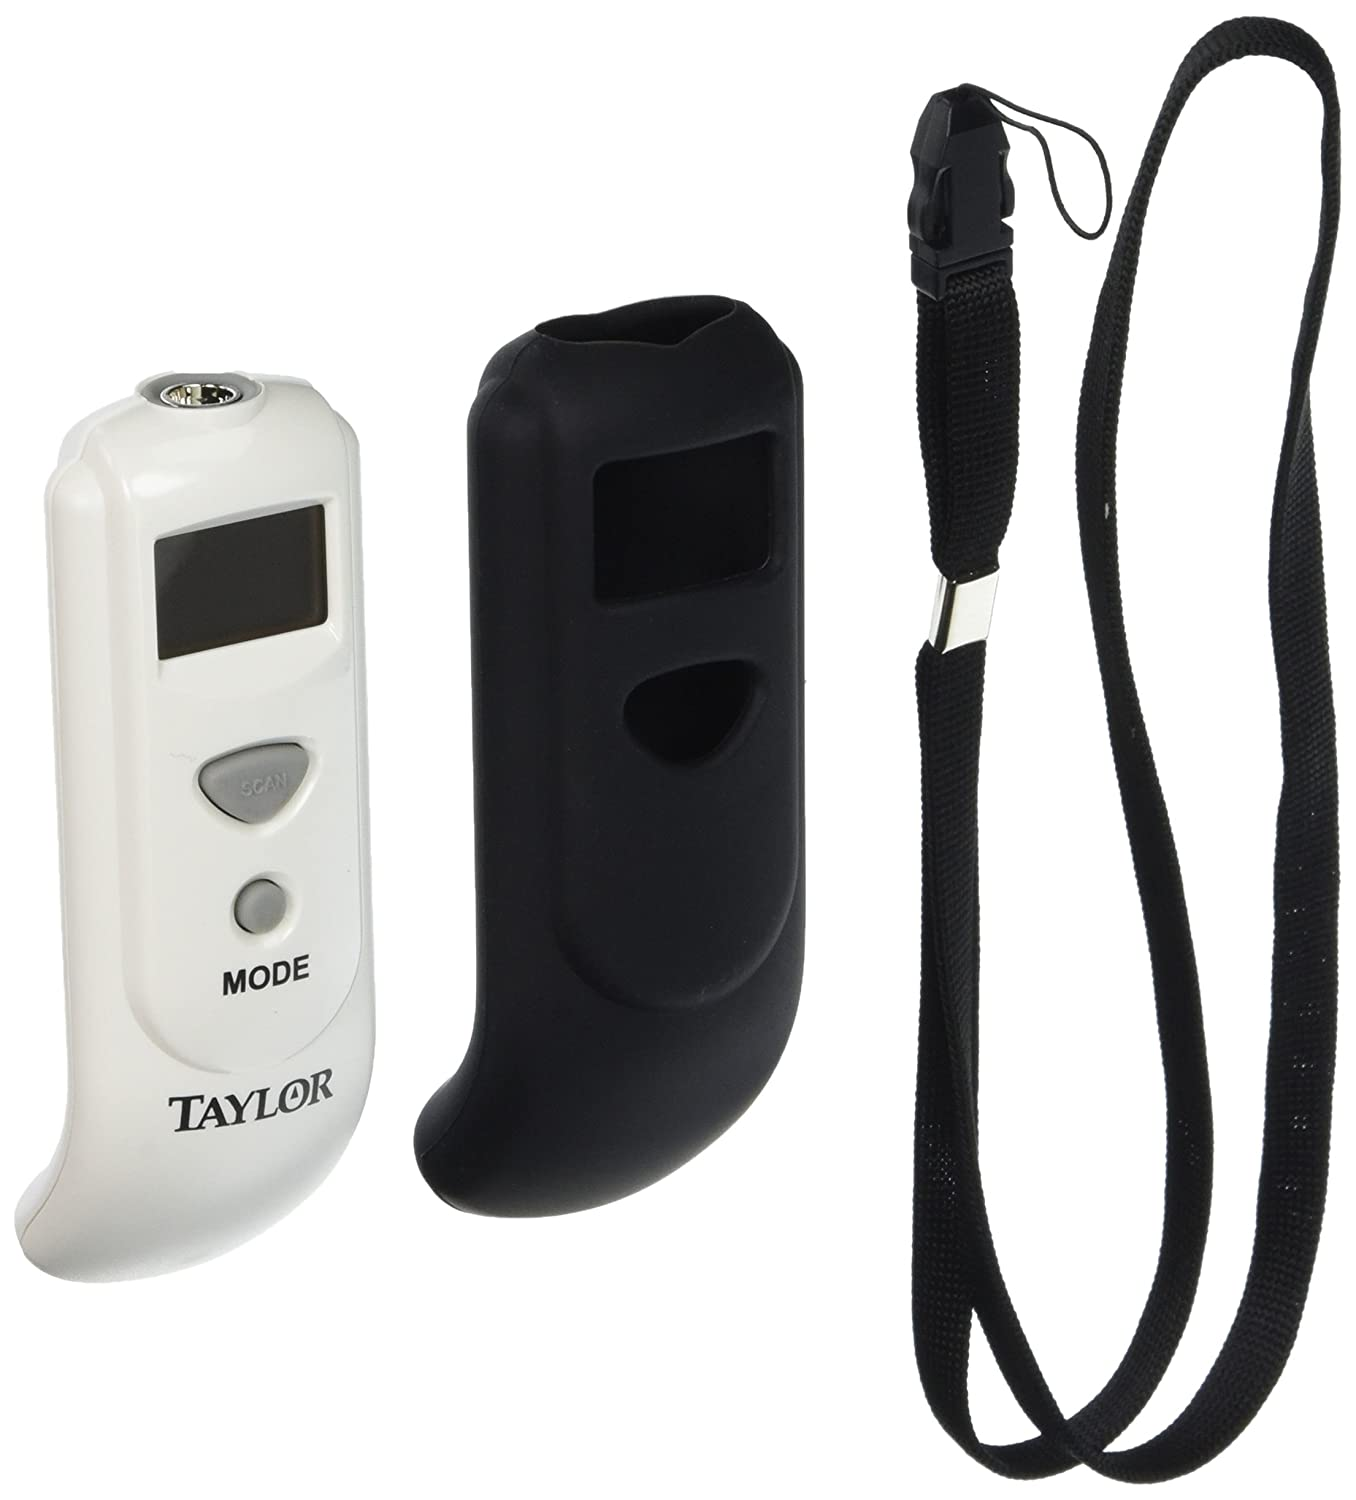 Taylor Precision Products Infrared Thermometer 9527